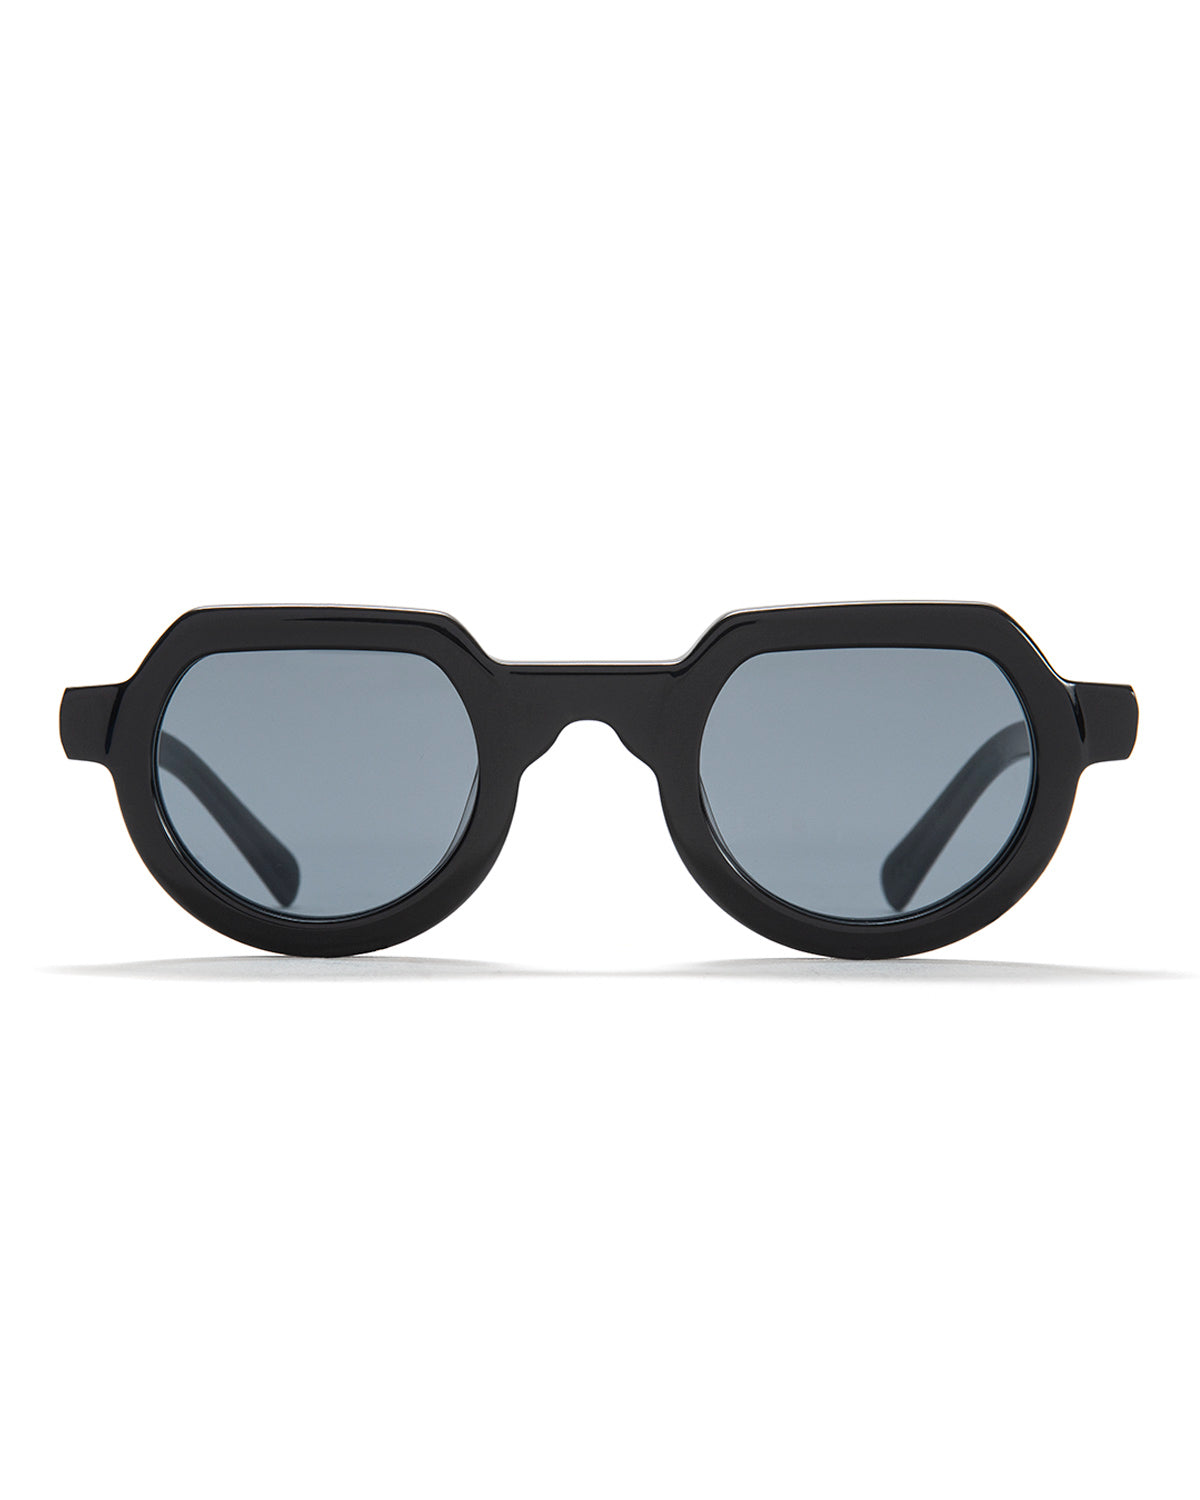 Tani Sunglasses - Black